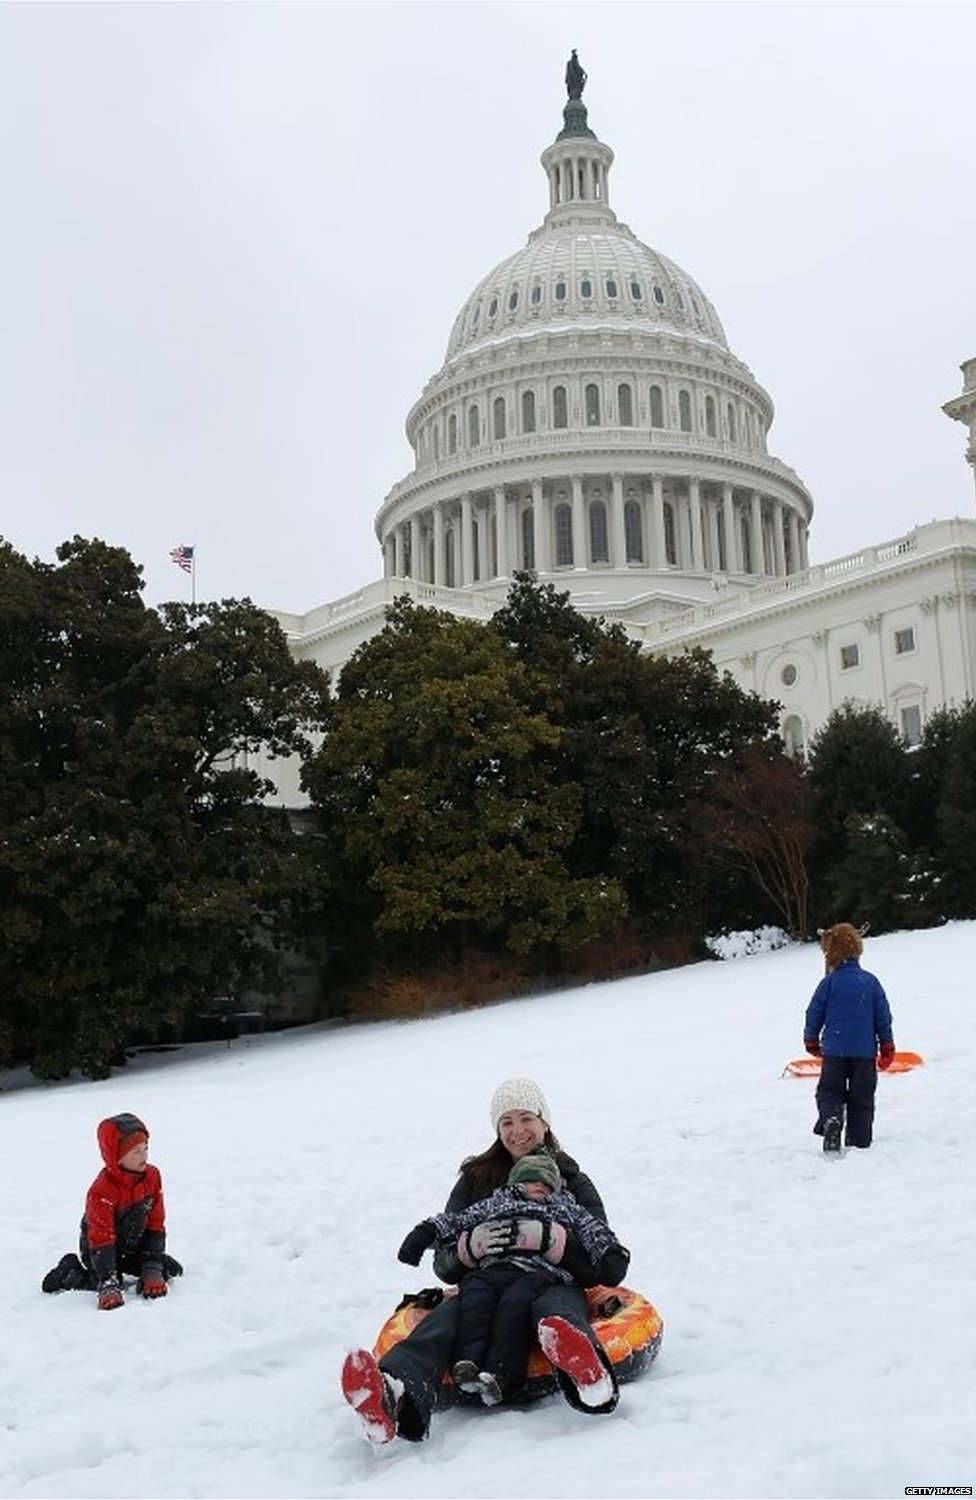 Members of the Miller family sled on the west lawn of the US Capitol in Washington DC on 13 February 2014